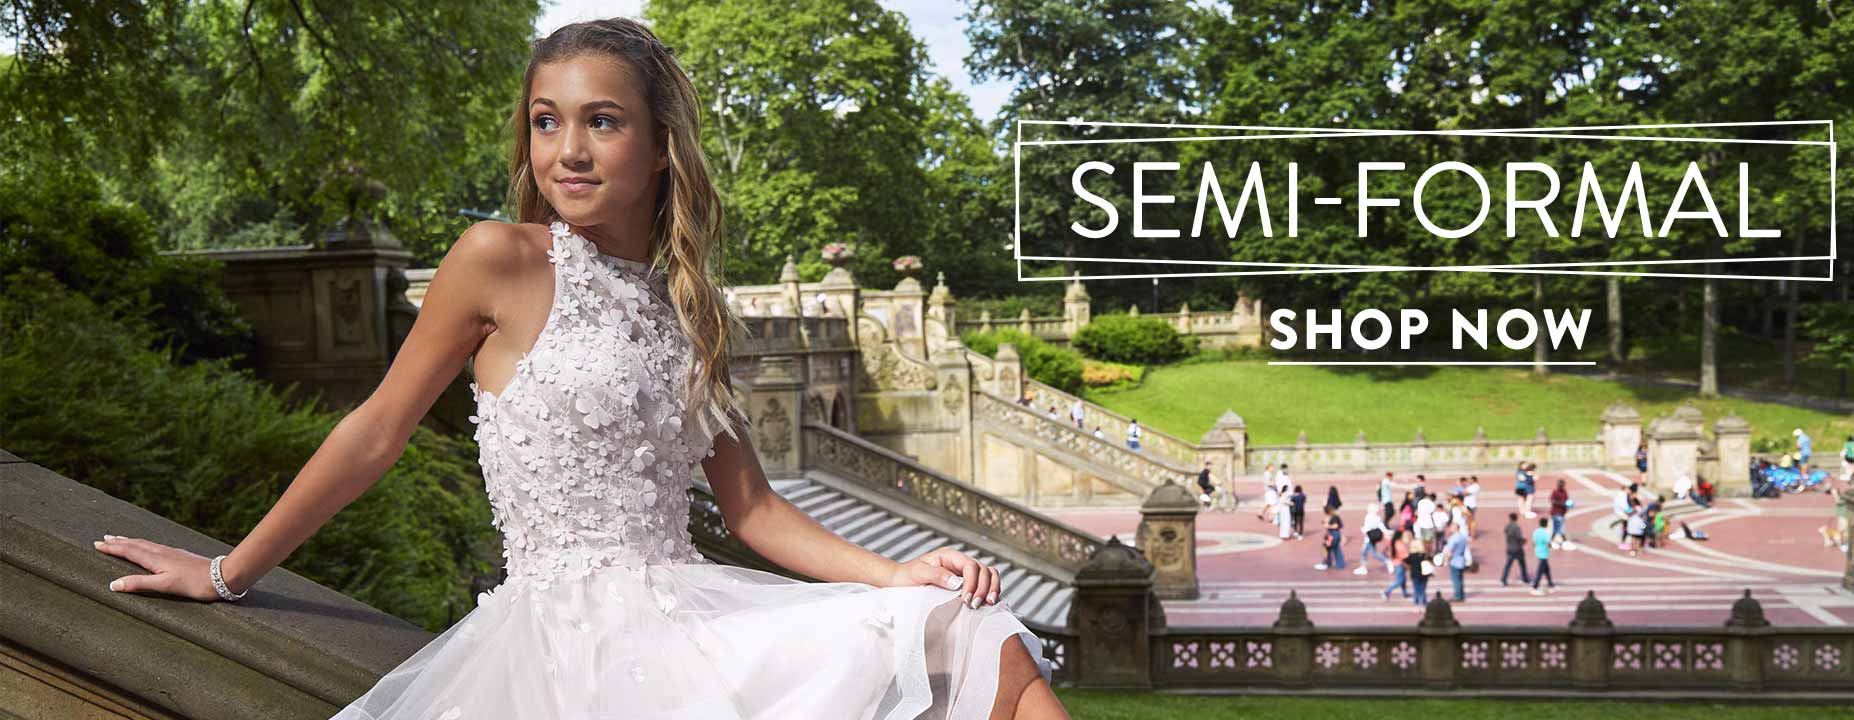 Semi-Formal - Shop Now